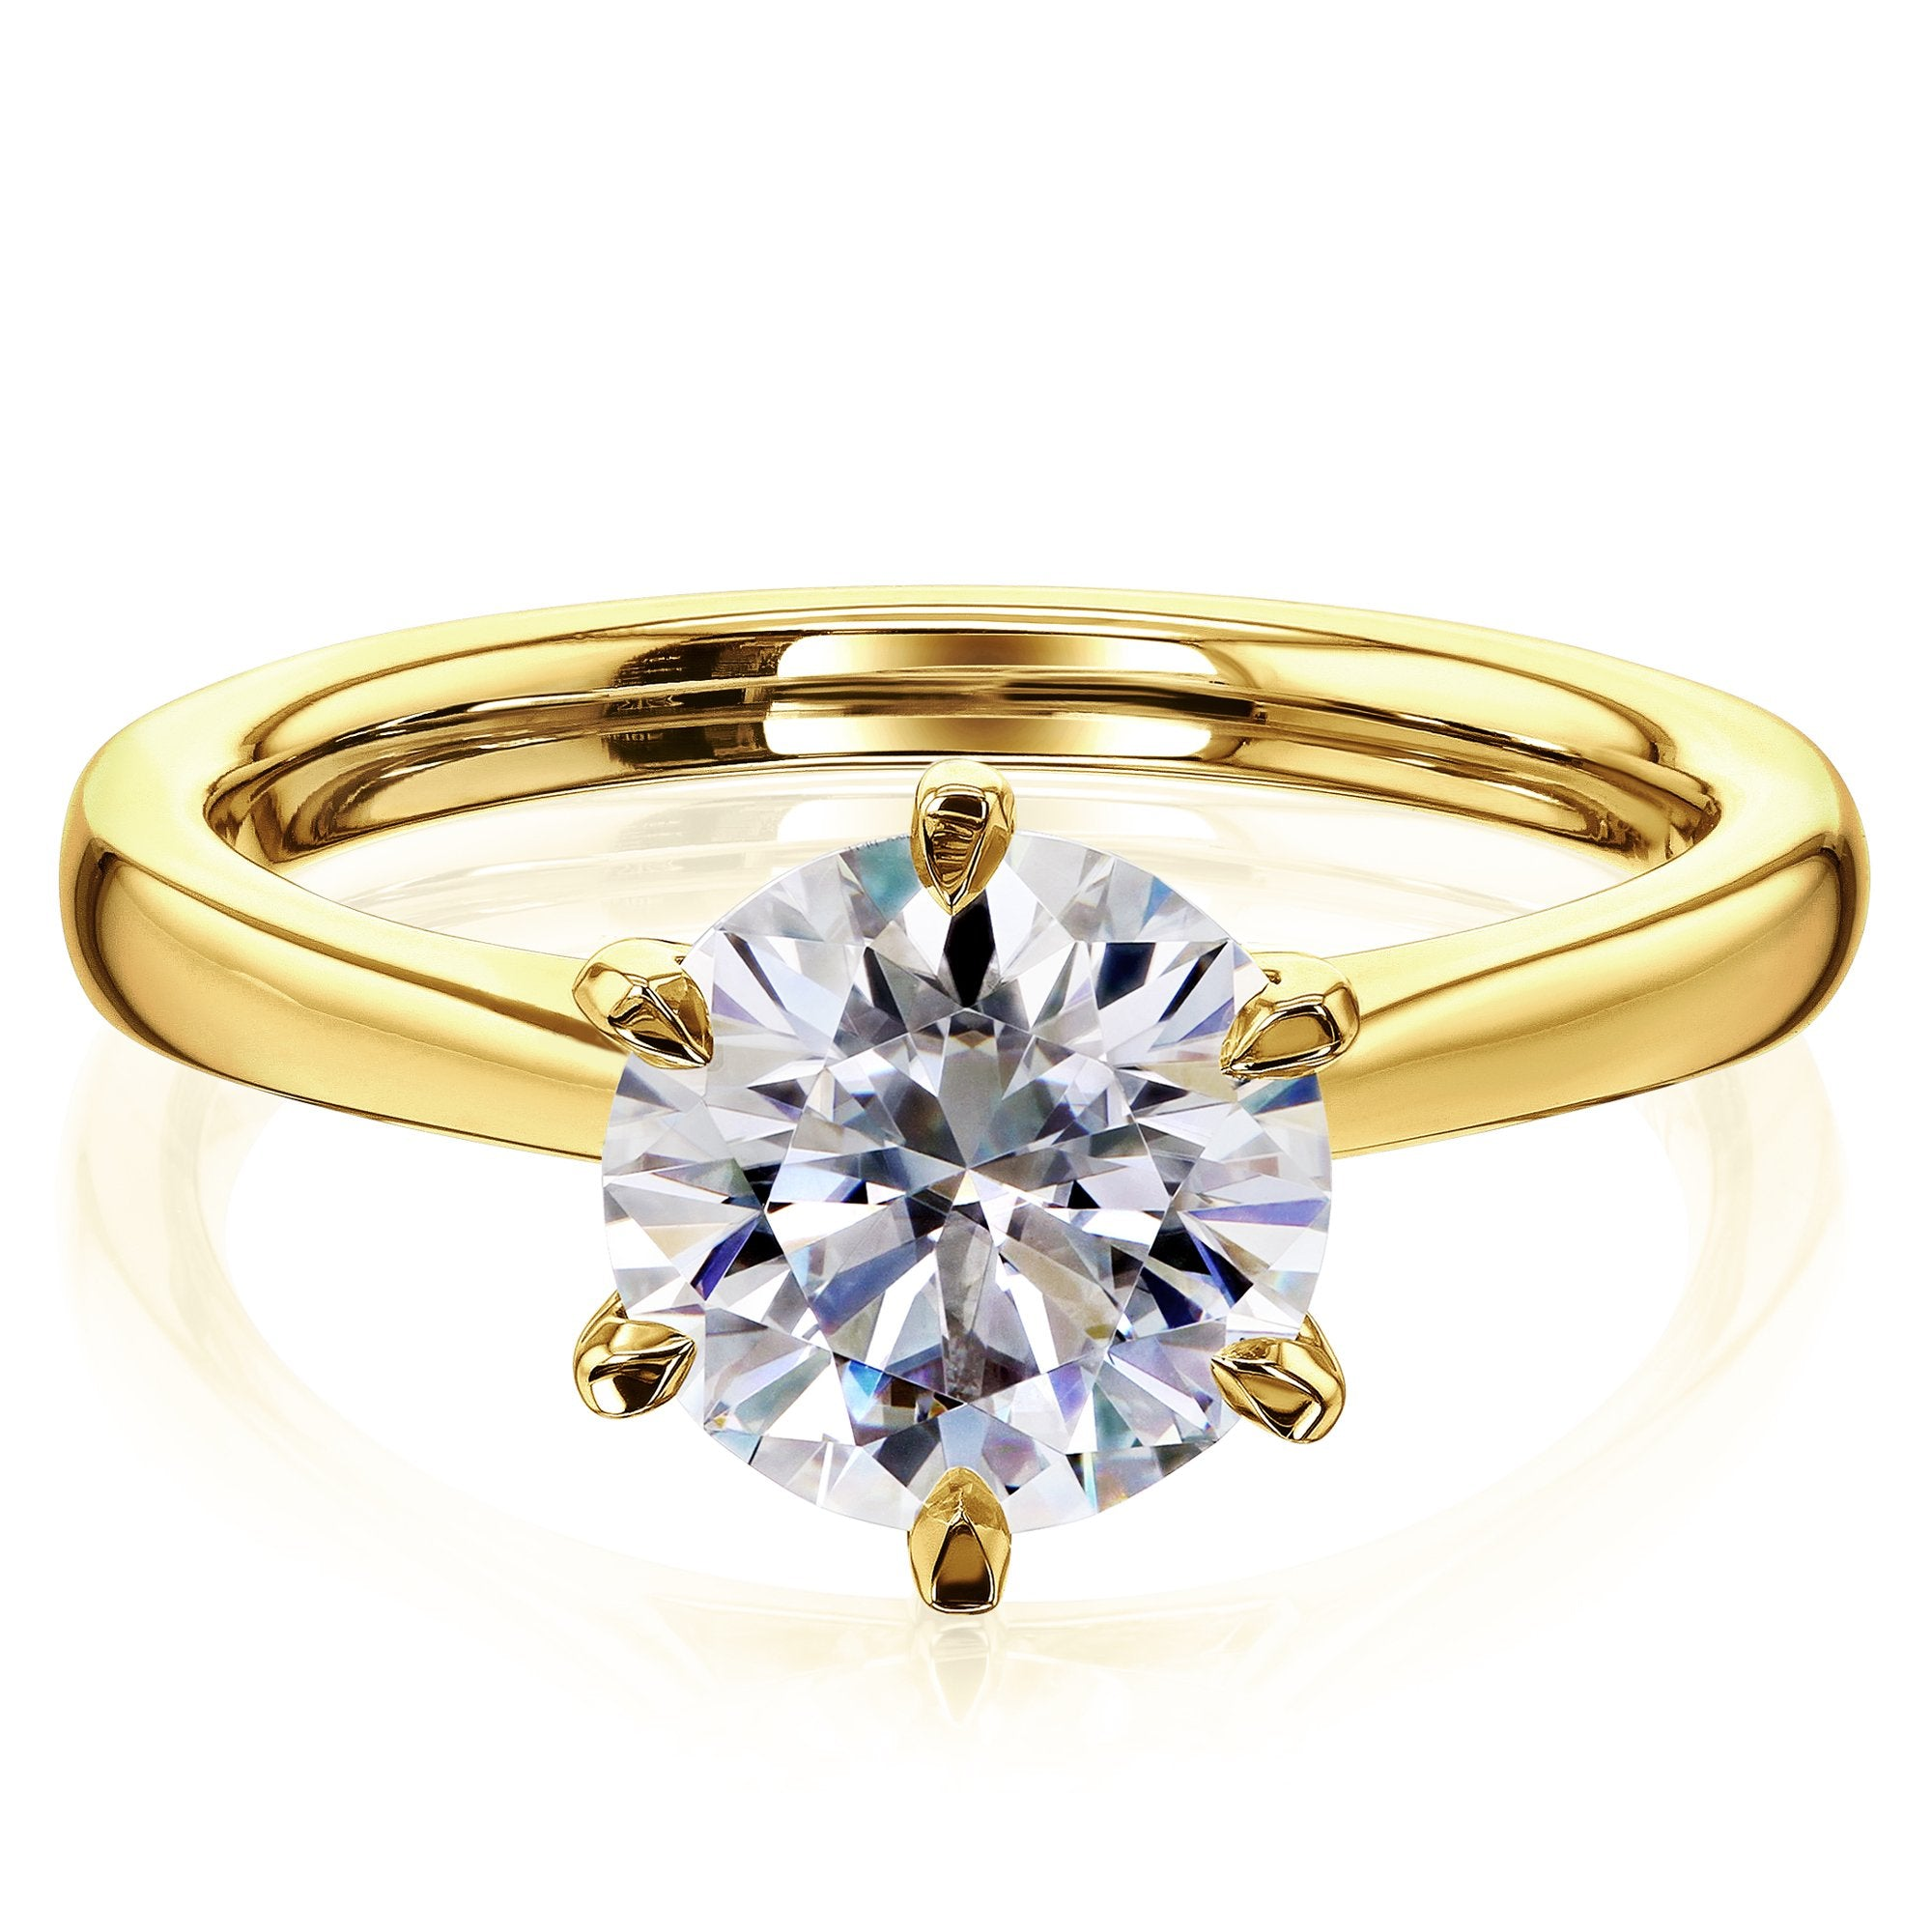 Cheap 1.9ct Round Forever One Moissanite 6-Prong Ring - yellow-gold 4.0